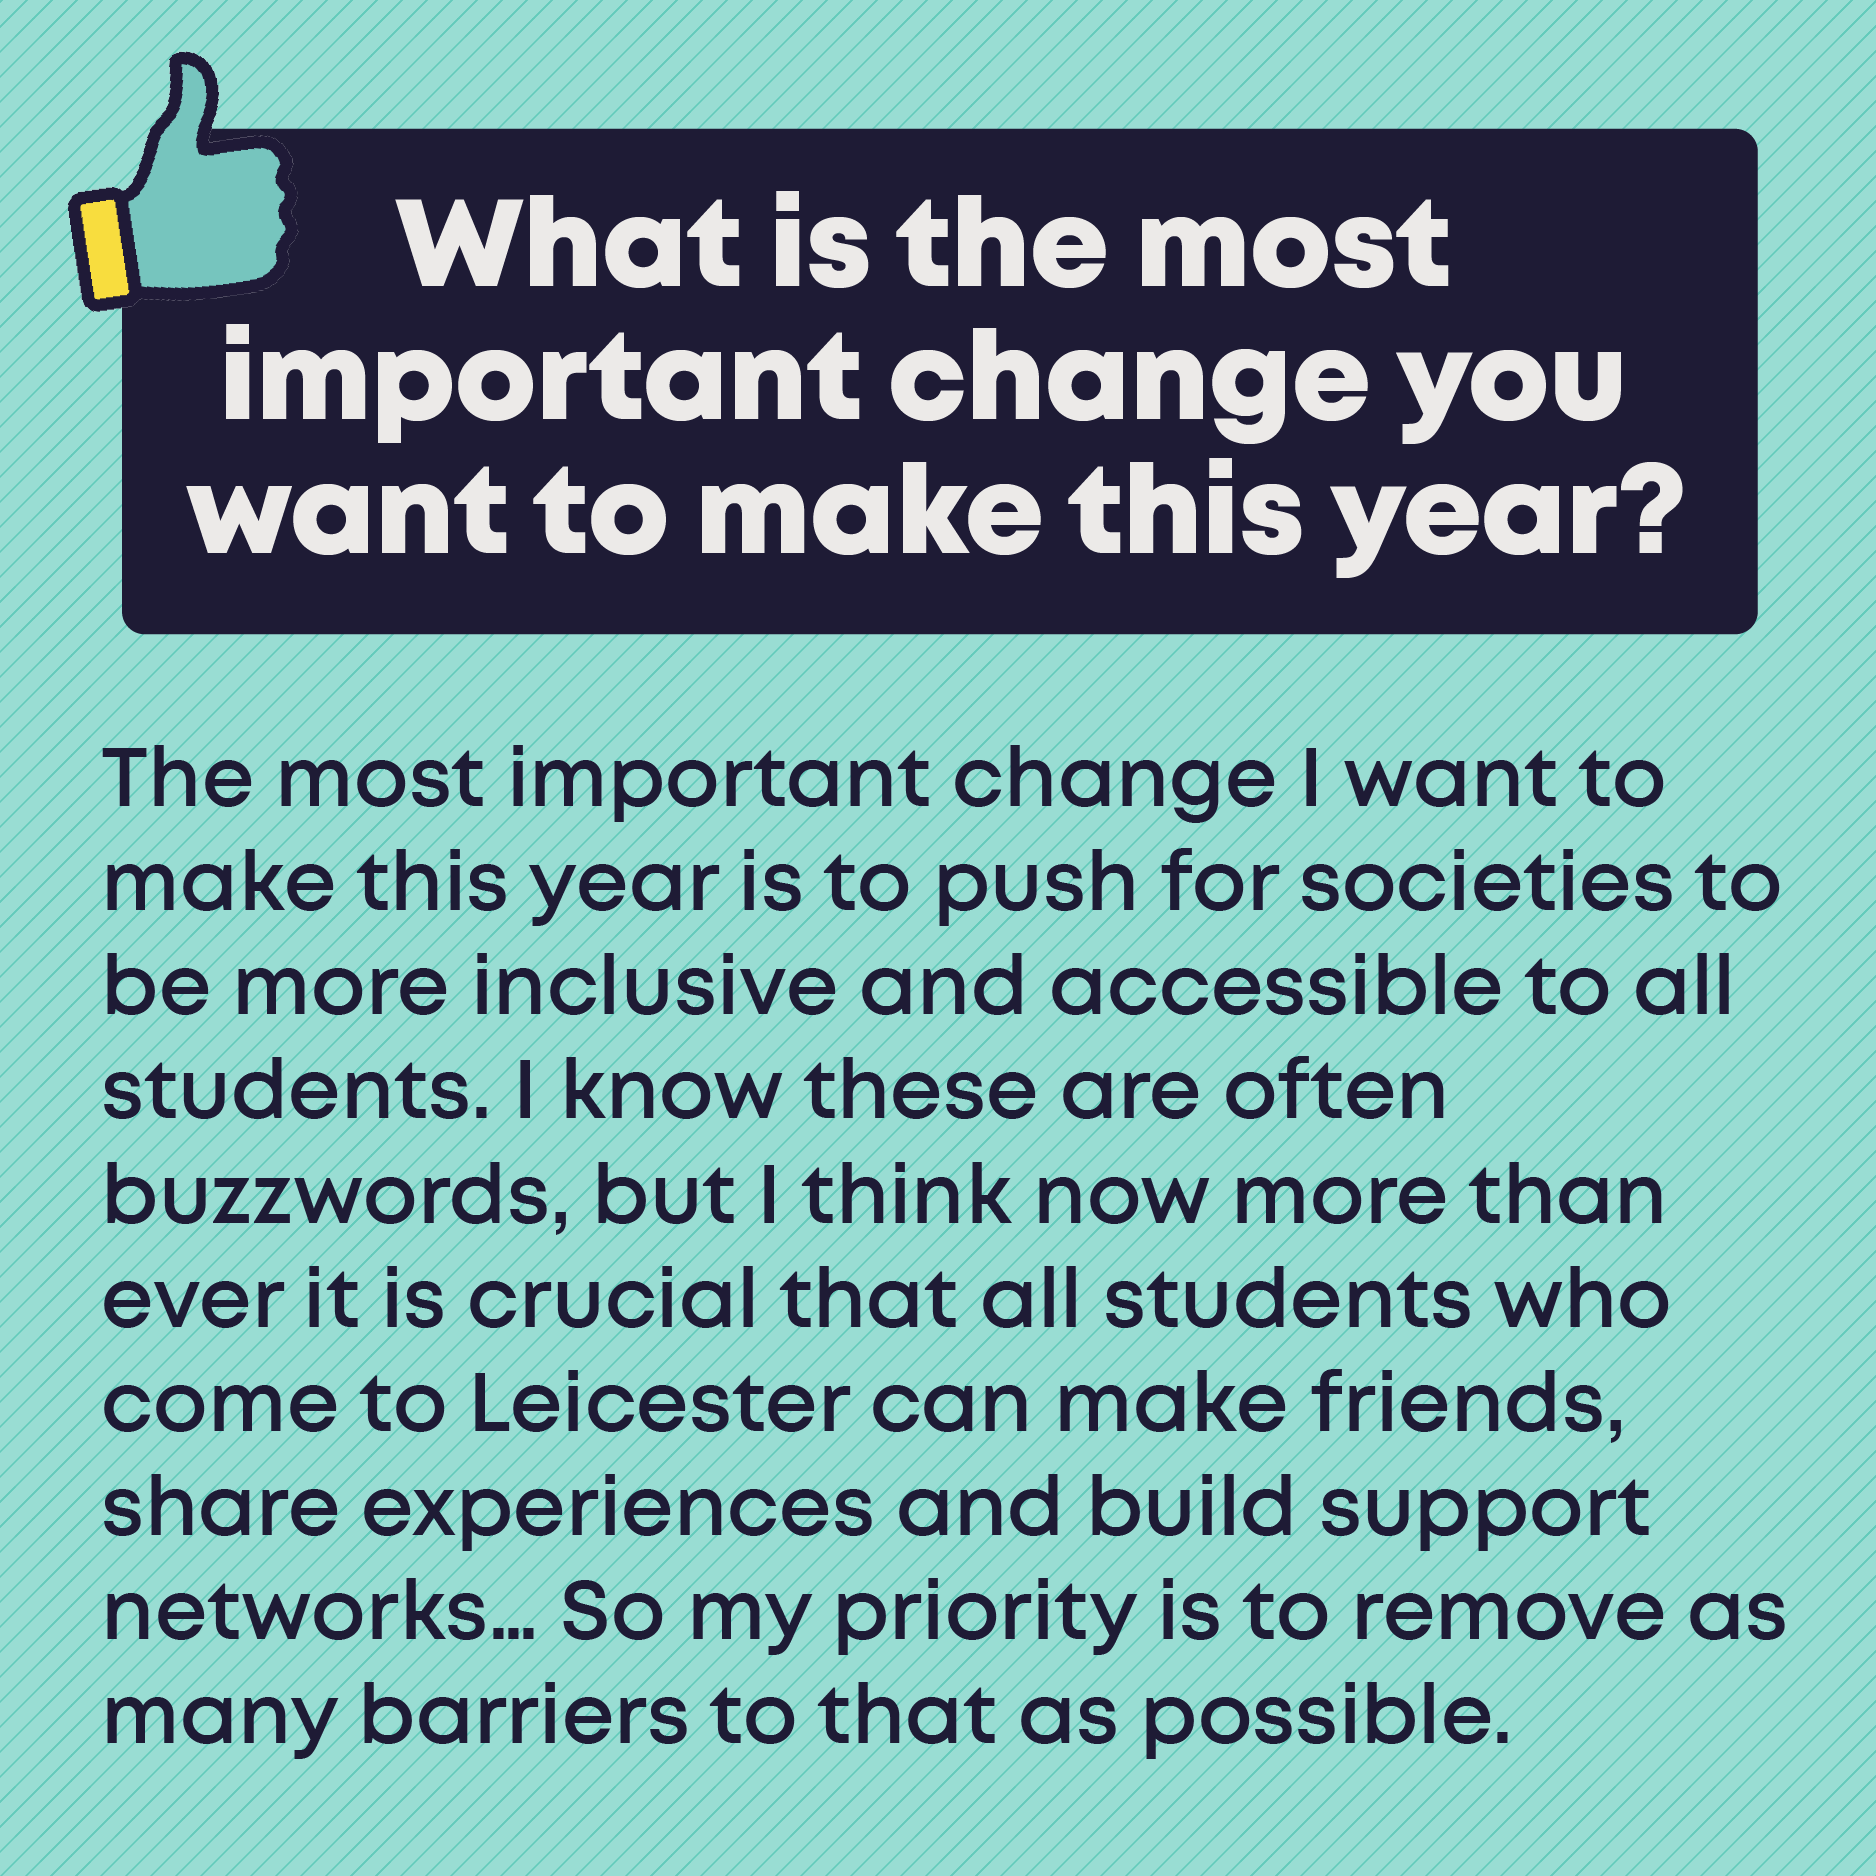 What is the most important change you want to make this year? The most important change I want to make this year is to push for societies to be more inclusive and accessible to all students. I know these are often buzzwords, but I think now more than ever it is crucial that all students who come to Leicester can make friends, share experiences and build support networks… So my priority is to remove as many barriers to that as possible.